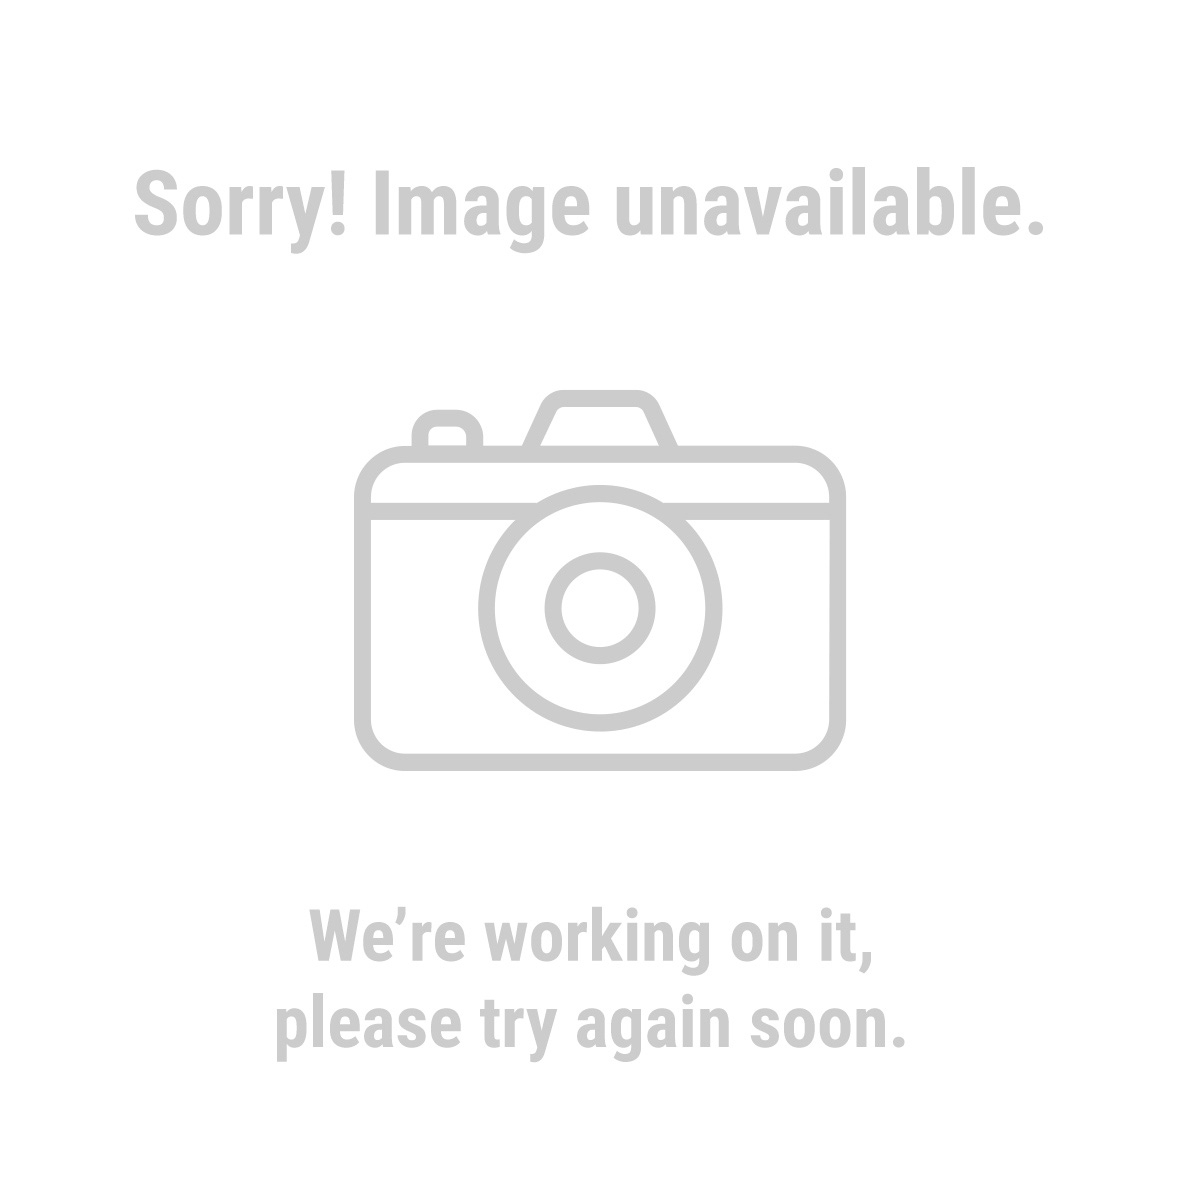 Haul-Master® 41005 1000 Lb. Swing-Back Trailer Jack